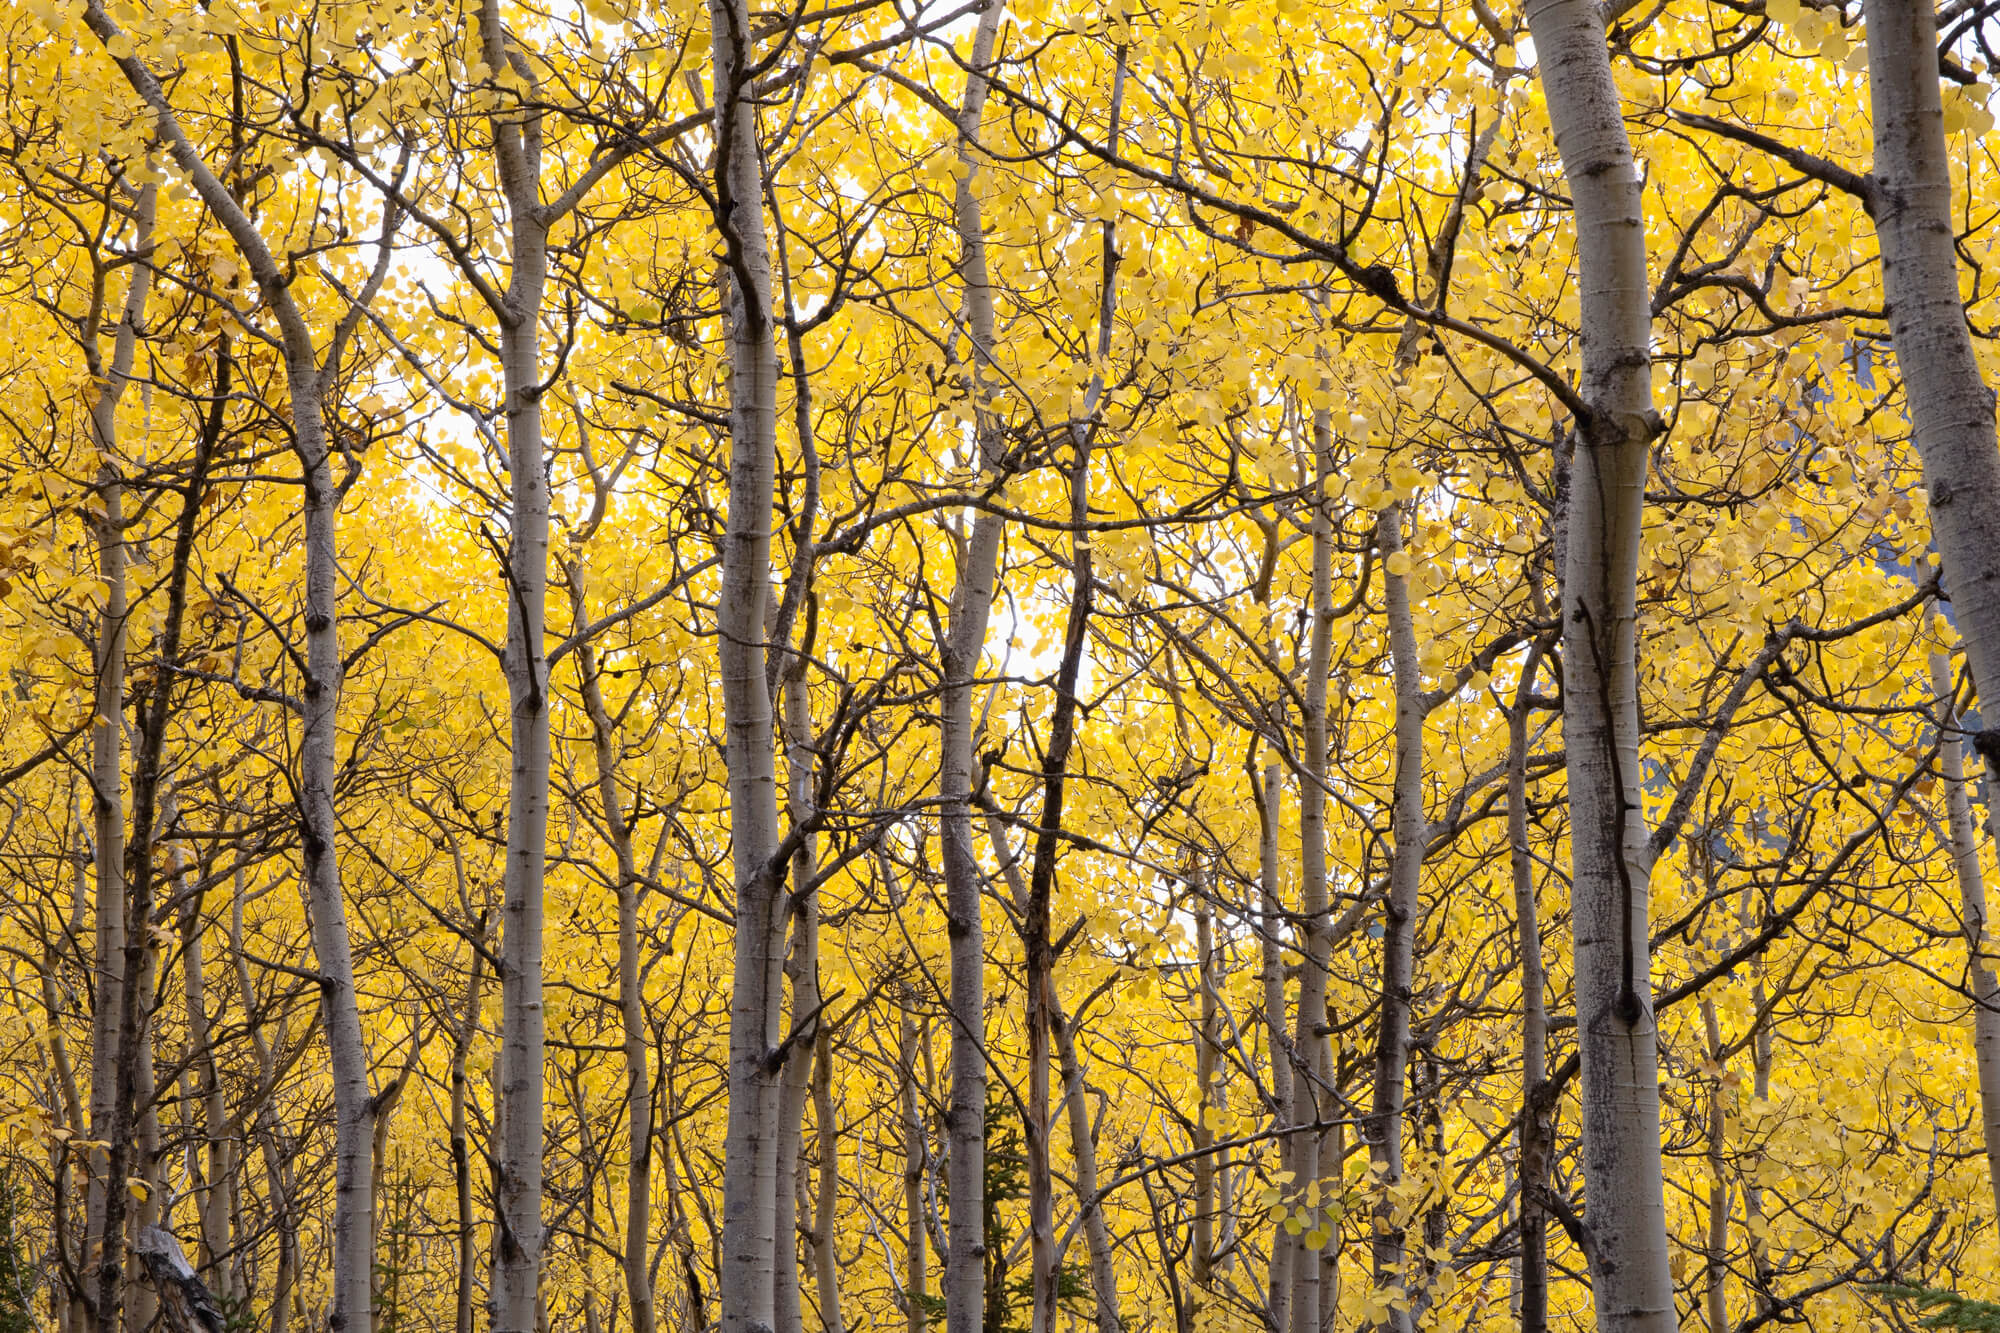 Autumn Scenic Of Colorful Yellow Aspen Trees Wall Mural Photo Wallpaper